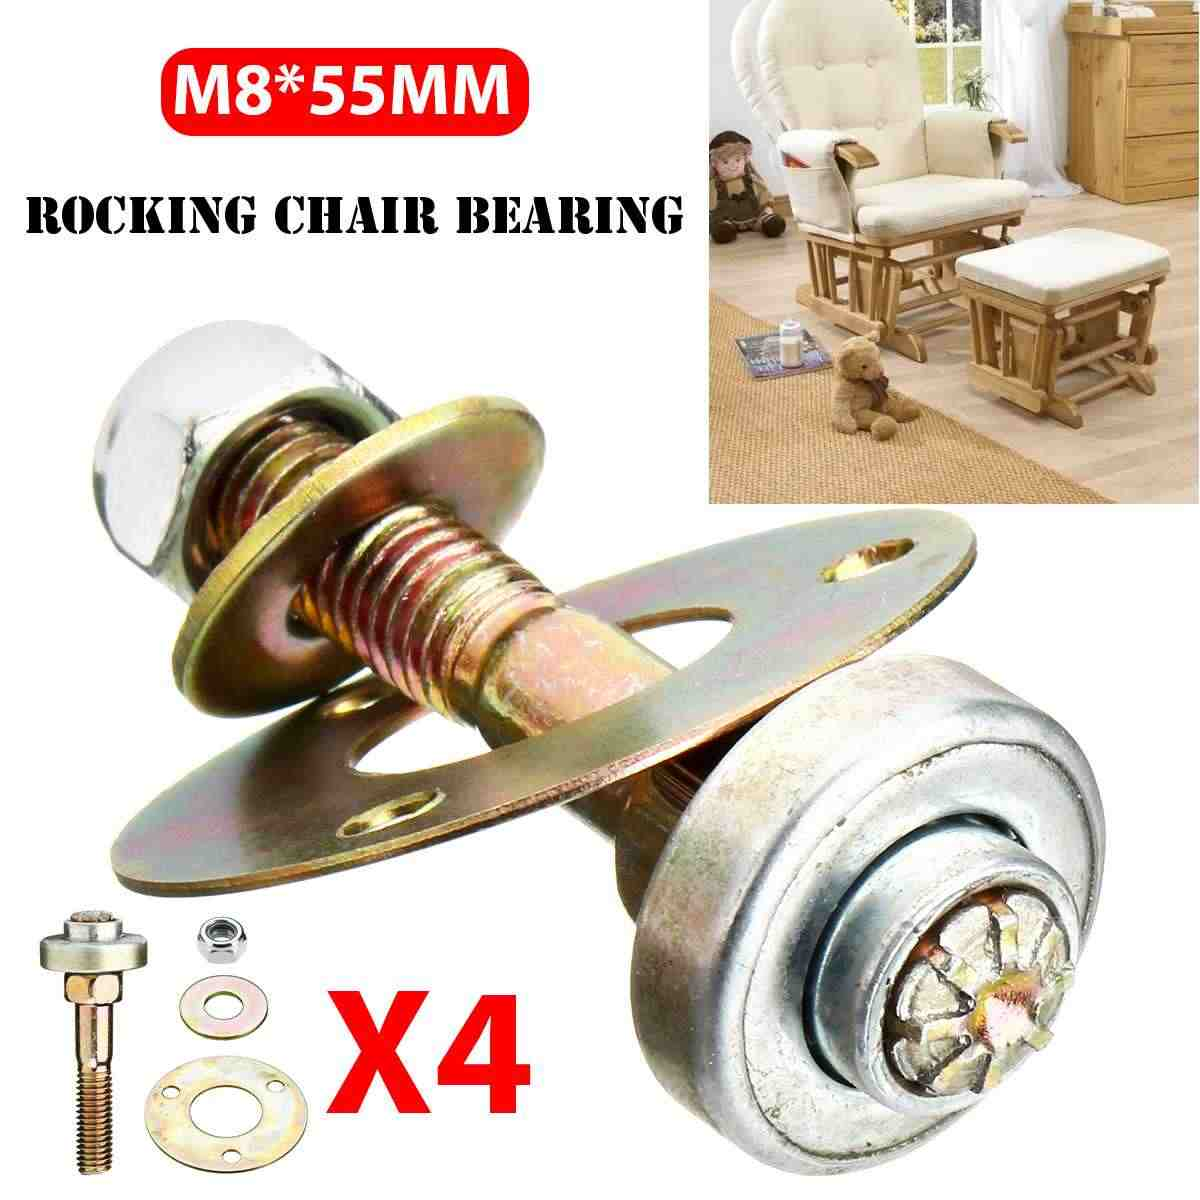 5Set Rocking Chair Bearing Connecting Fittings Furniture Screws Nut Bolt Kit Furniture Accessories